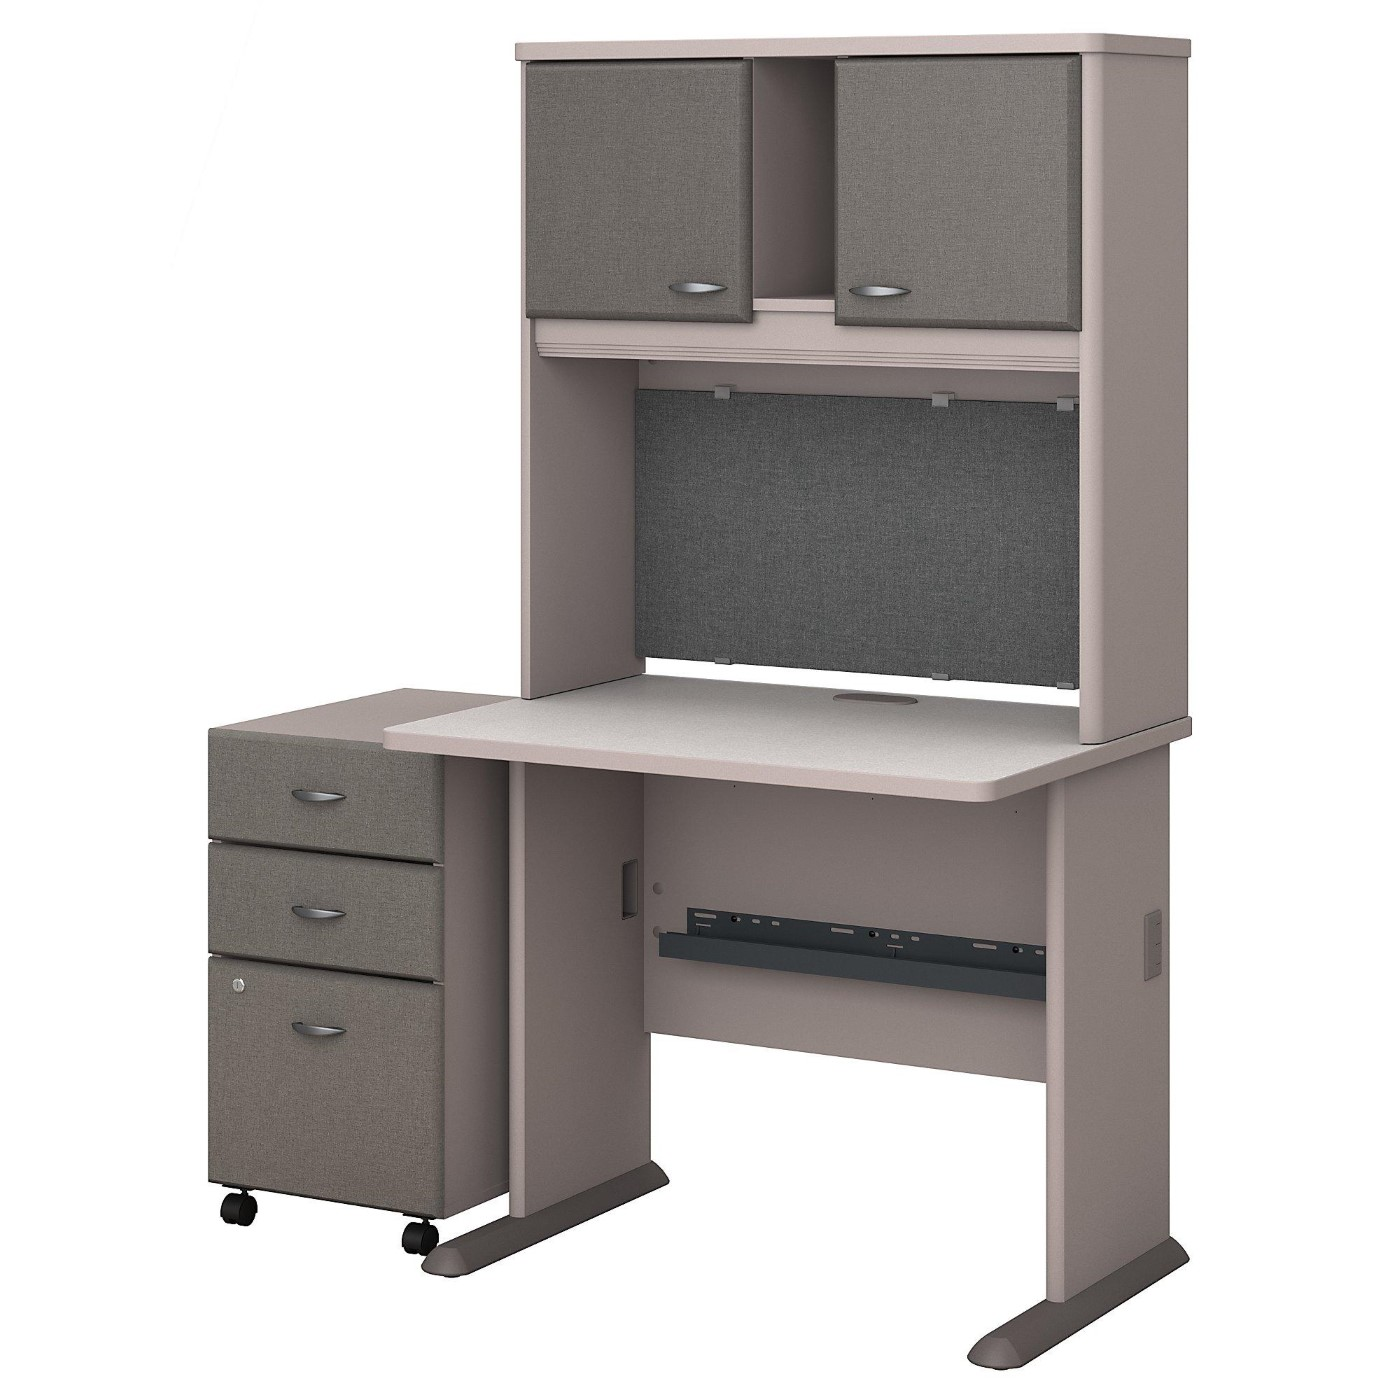 BUSH BUSINESS FURNITURE SERIES A 36W DESK WITH HUTCH AND MOBILE FILE CABINET. FREE SHIPPING</font></b></font></b>&#x1F384<font color=red><b>ERGONOMICHOME HOLIDAY SALE - ENDS DEC. 17, 2019</b></font>&#x1F384